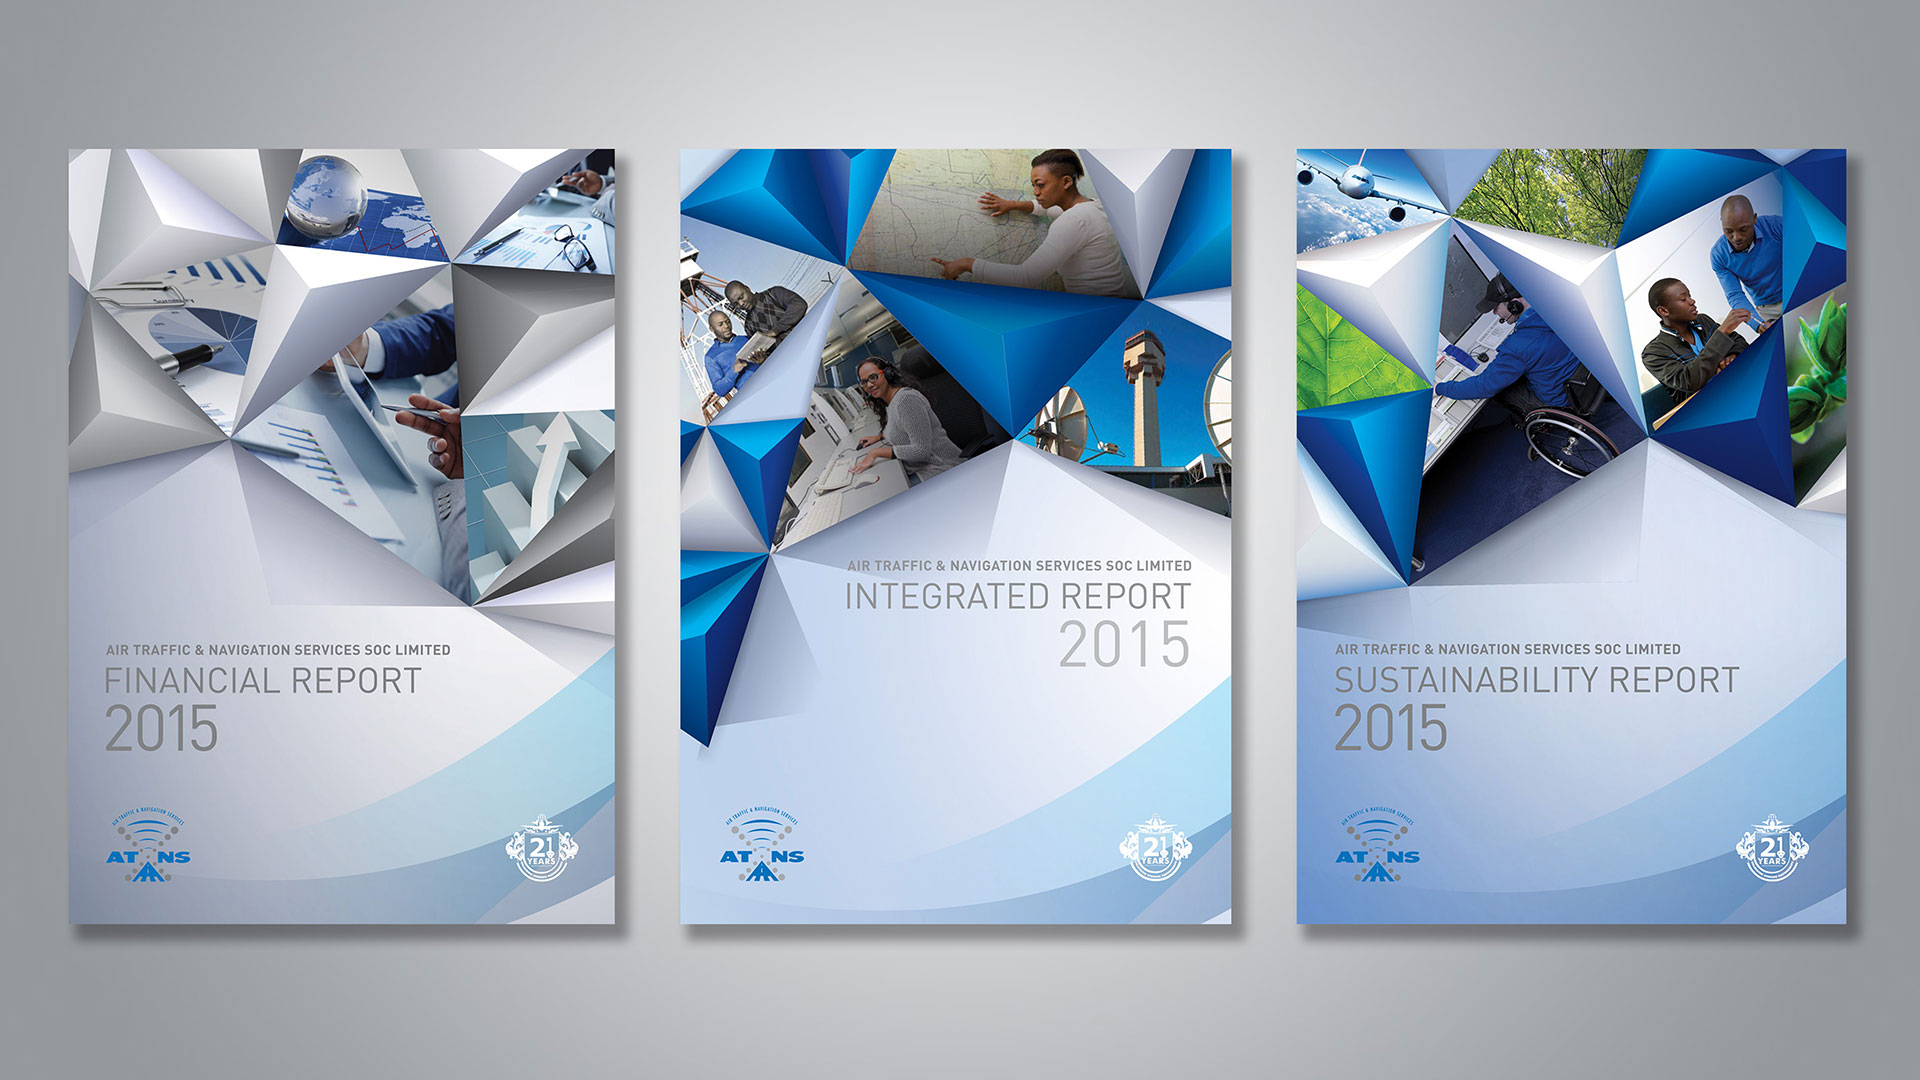 ATNS Annual Report